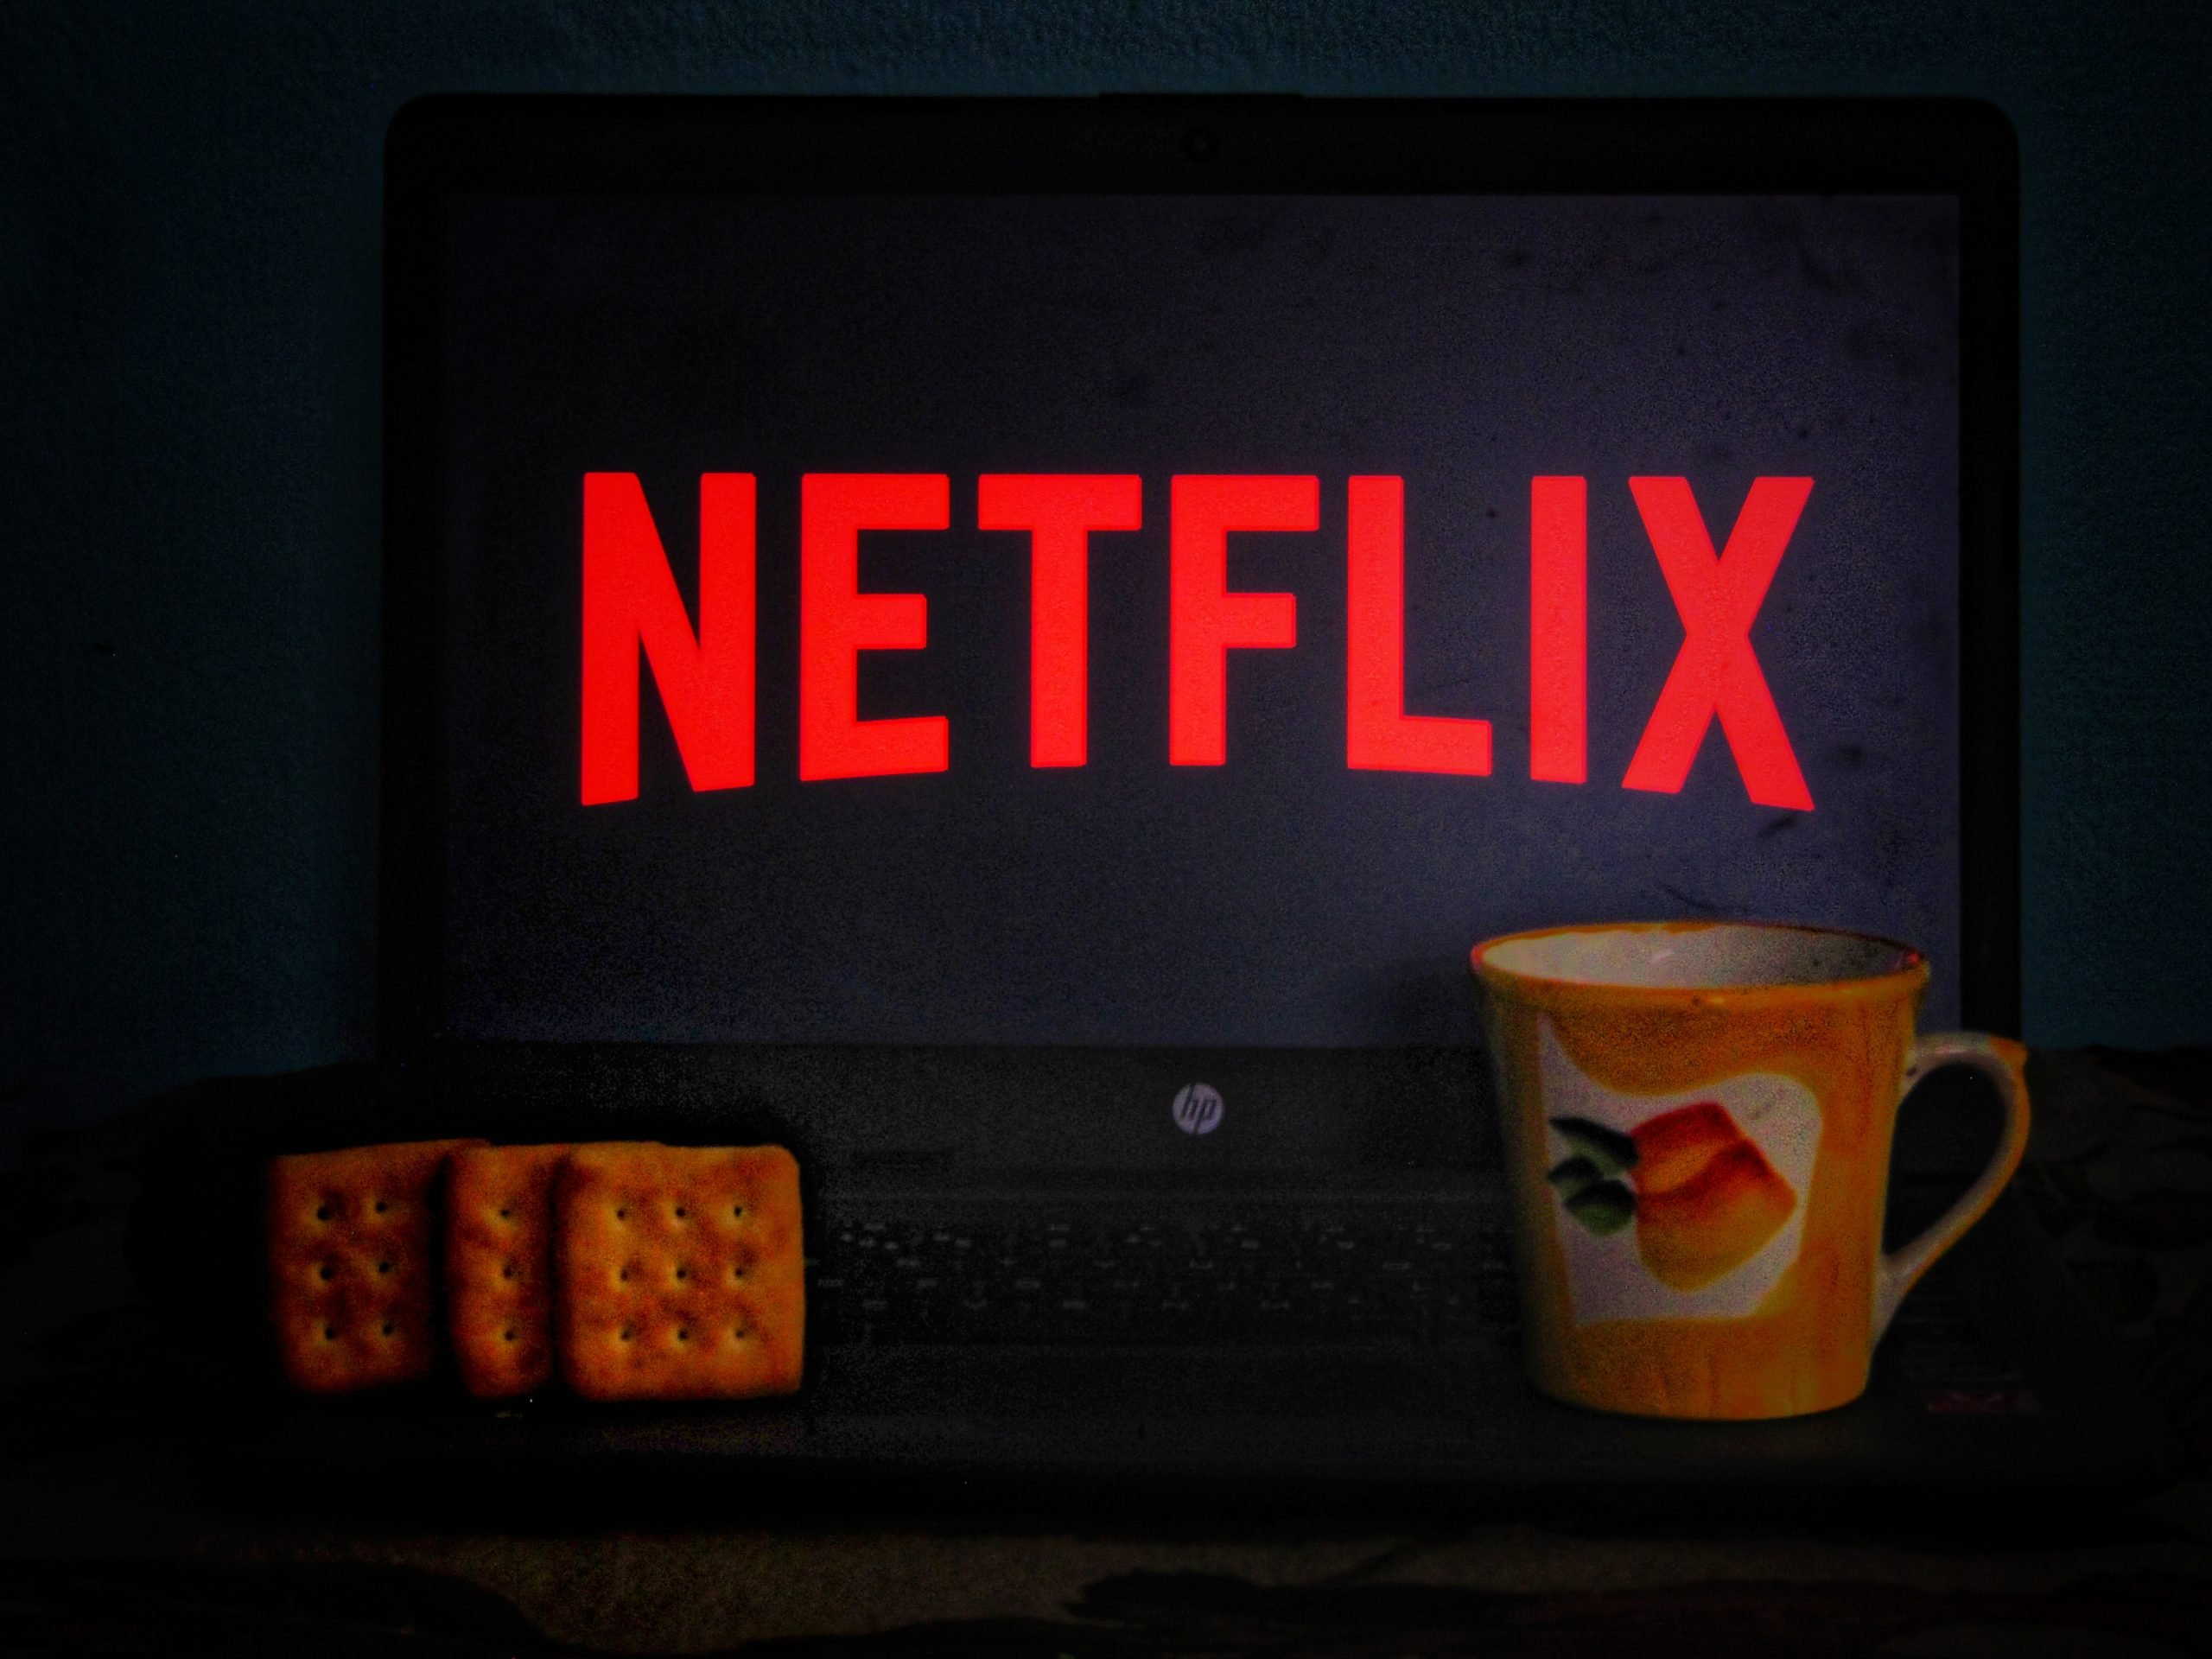 Netflix video streaming